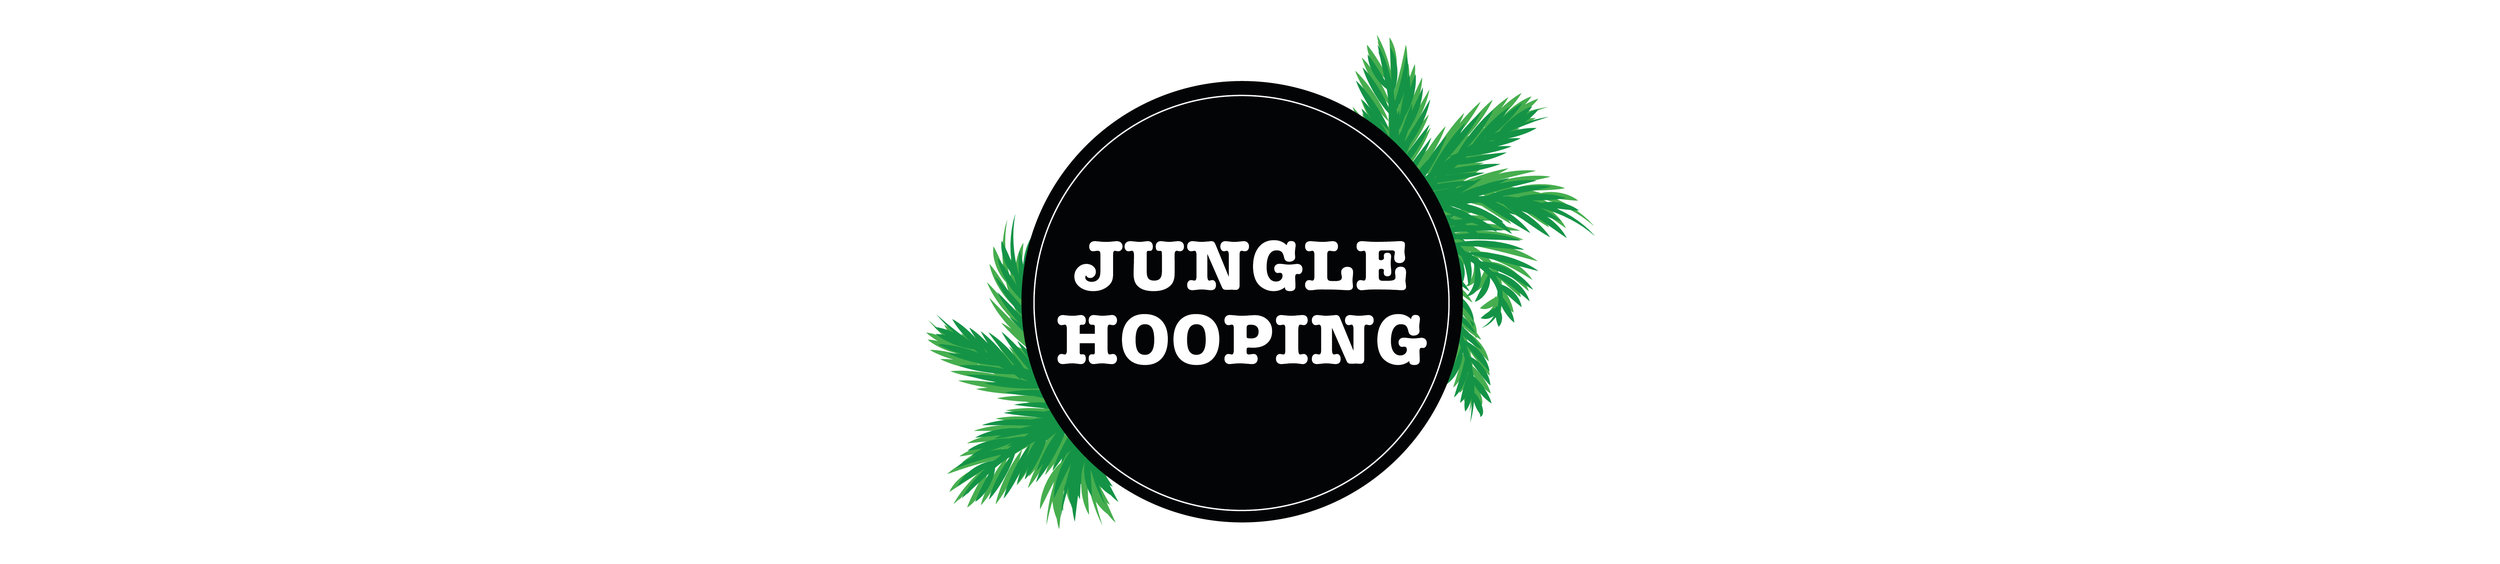 jungle-hooping-logo.jpg